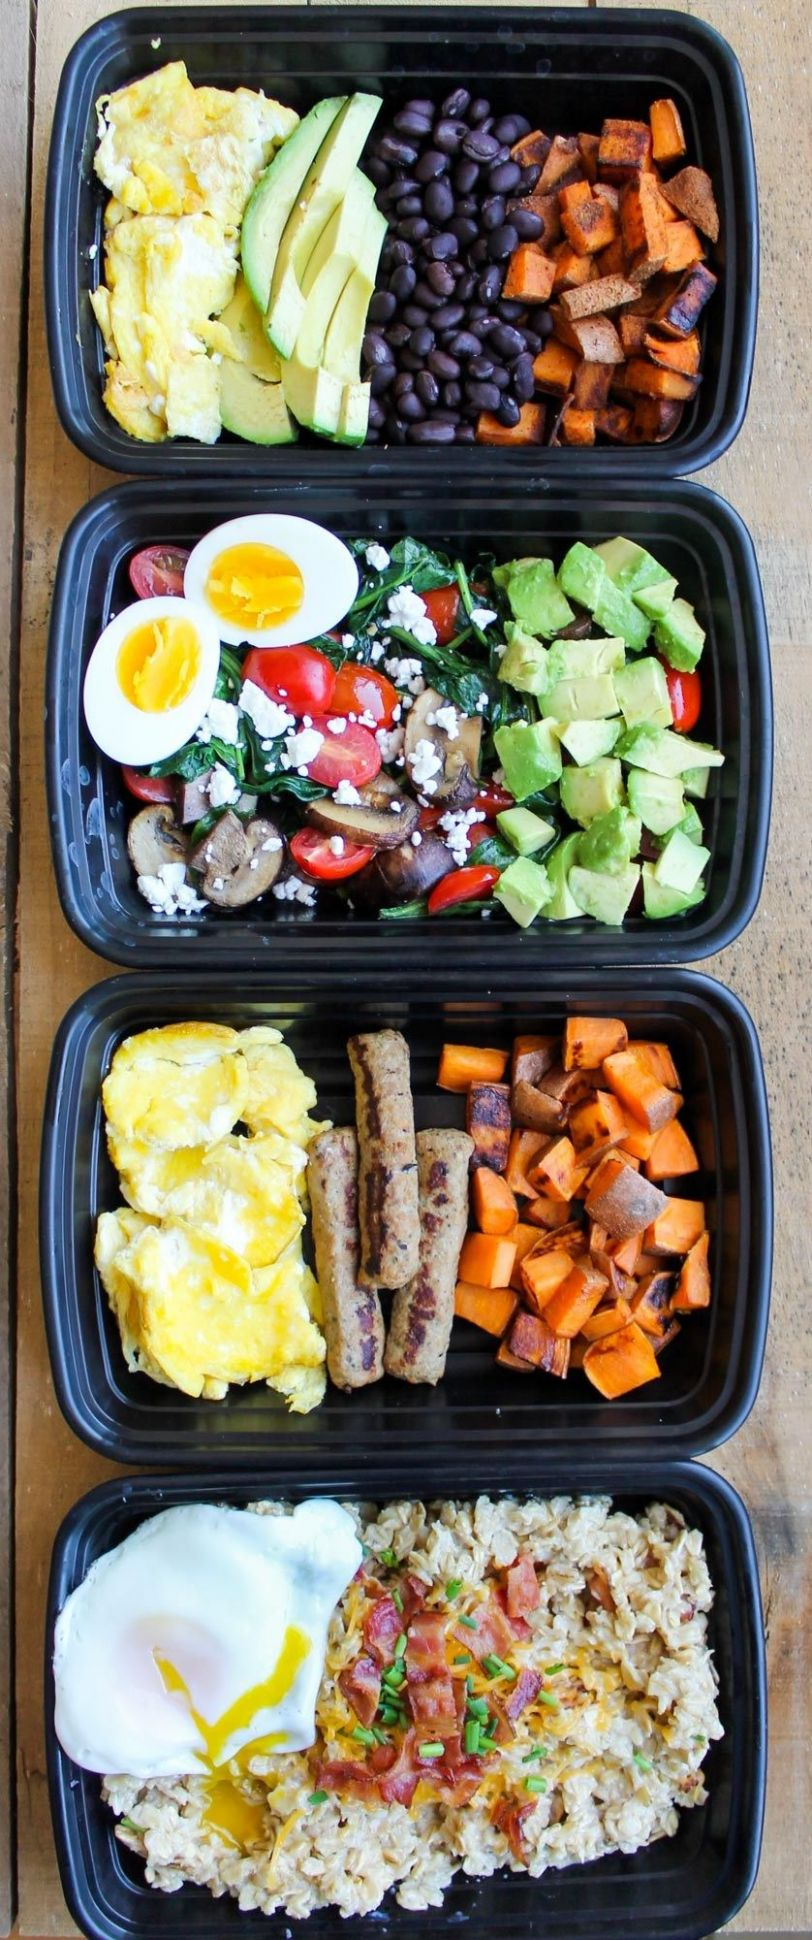 Make-Ahead Breakfast Meal Prep Bowls: 10 Ways